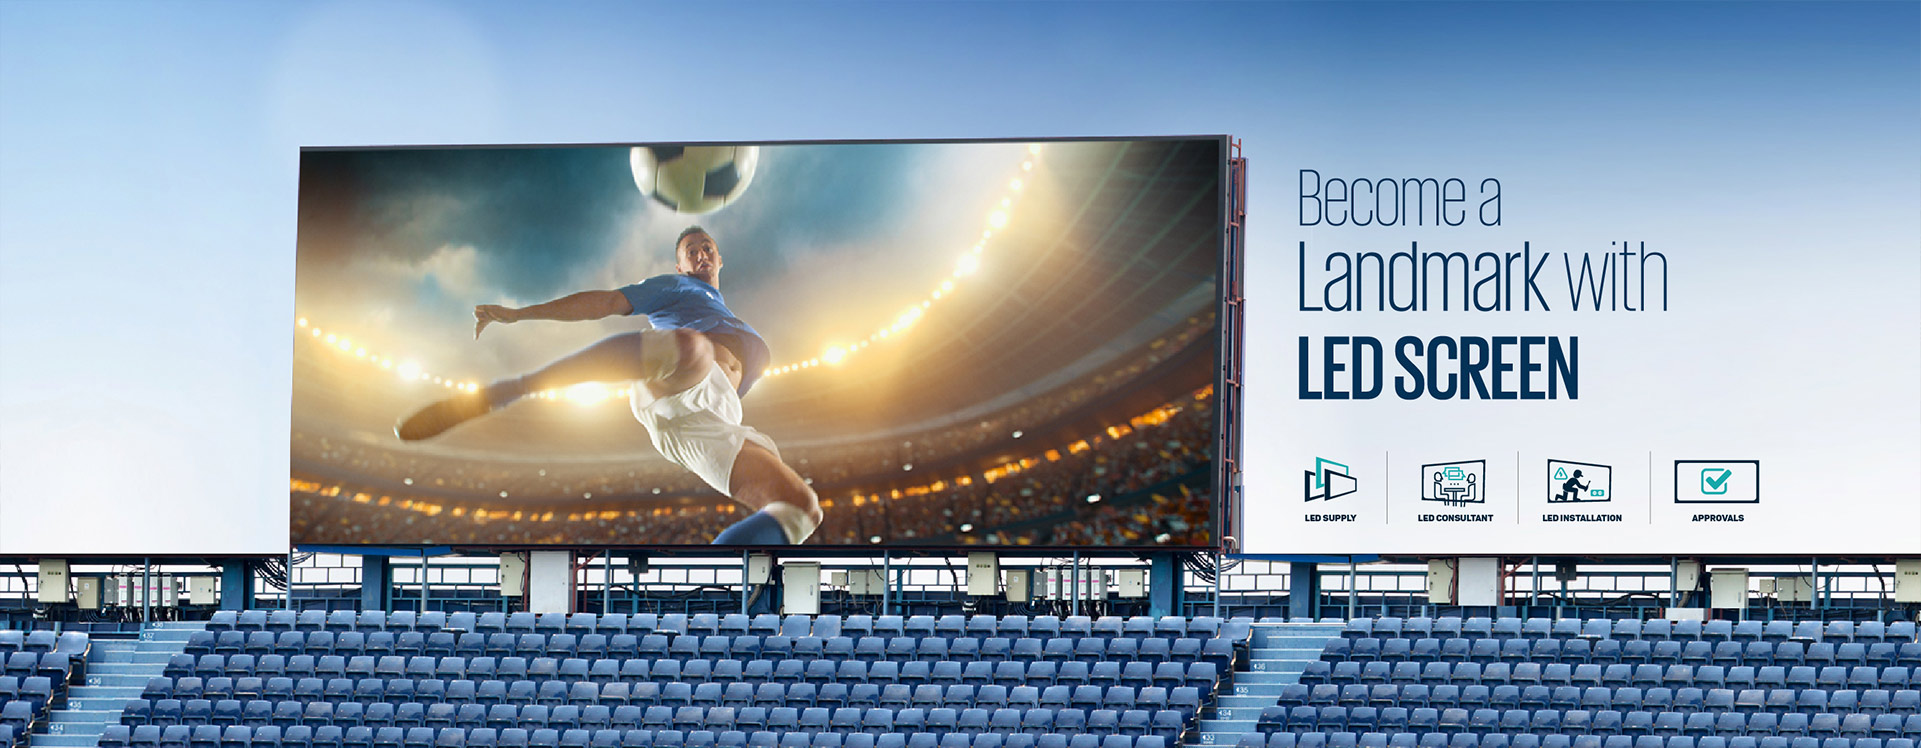 LED Screen Advertising in dubai, UAE